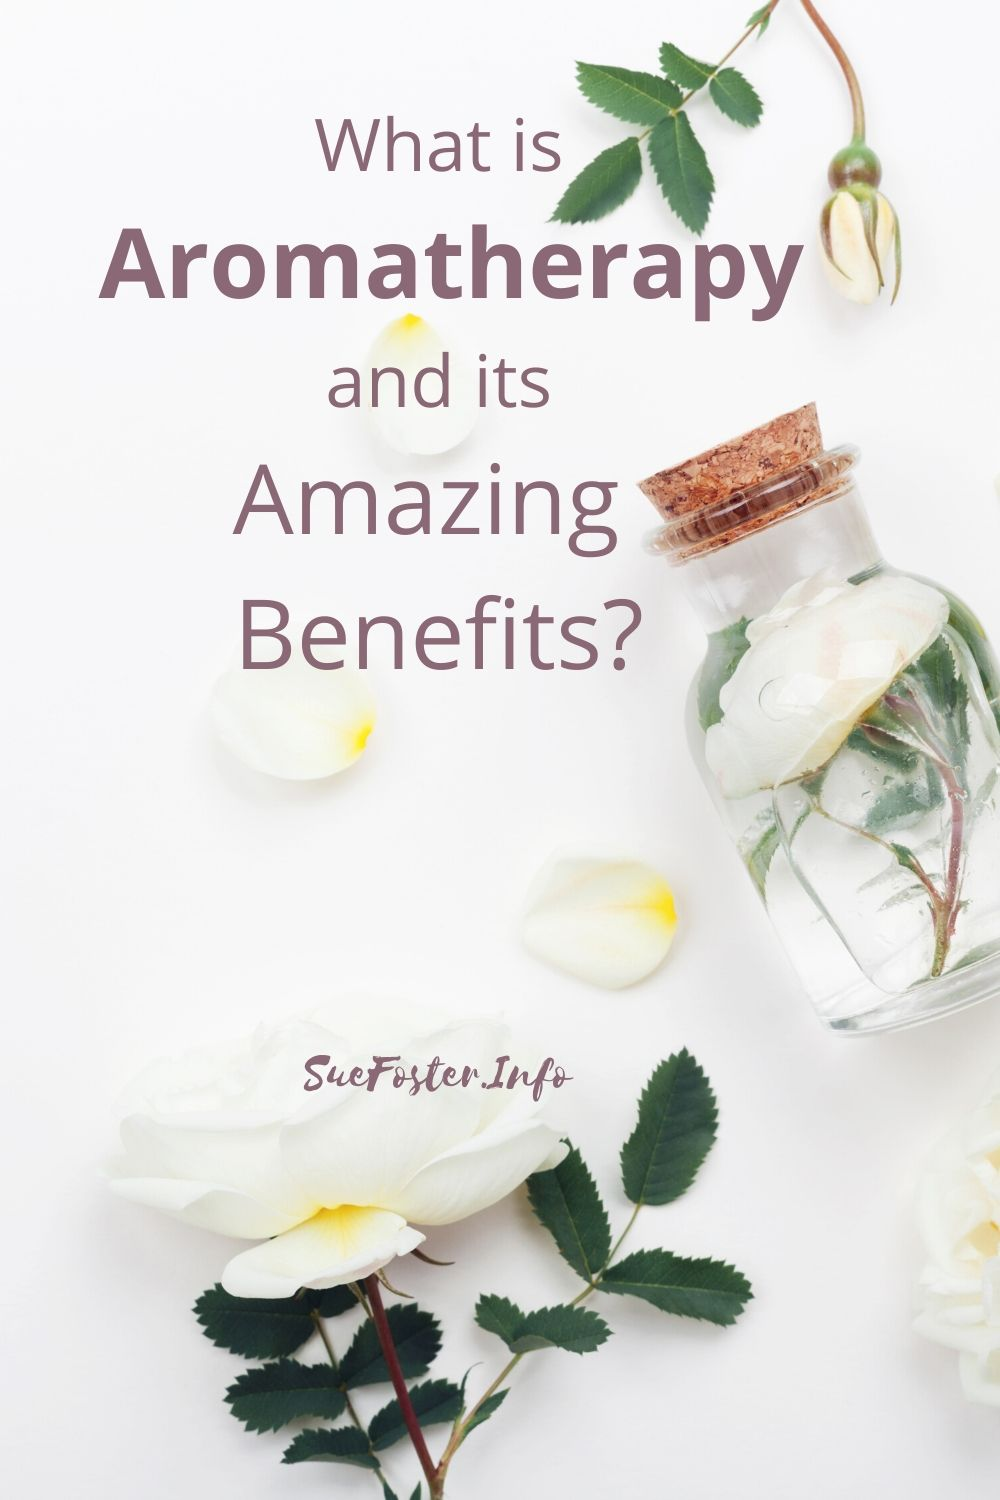 What is Aromatherapy and its amazing benefits? Aromatherapy has been used for thousands of years, it is a form of alternative medicine that is said to enhance physical, mental, emotional and spiritual well-being.